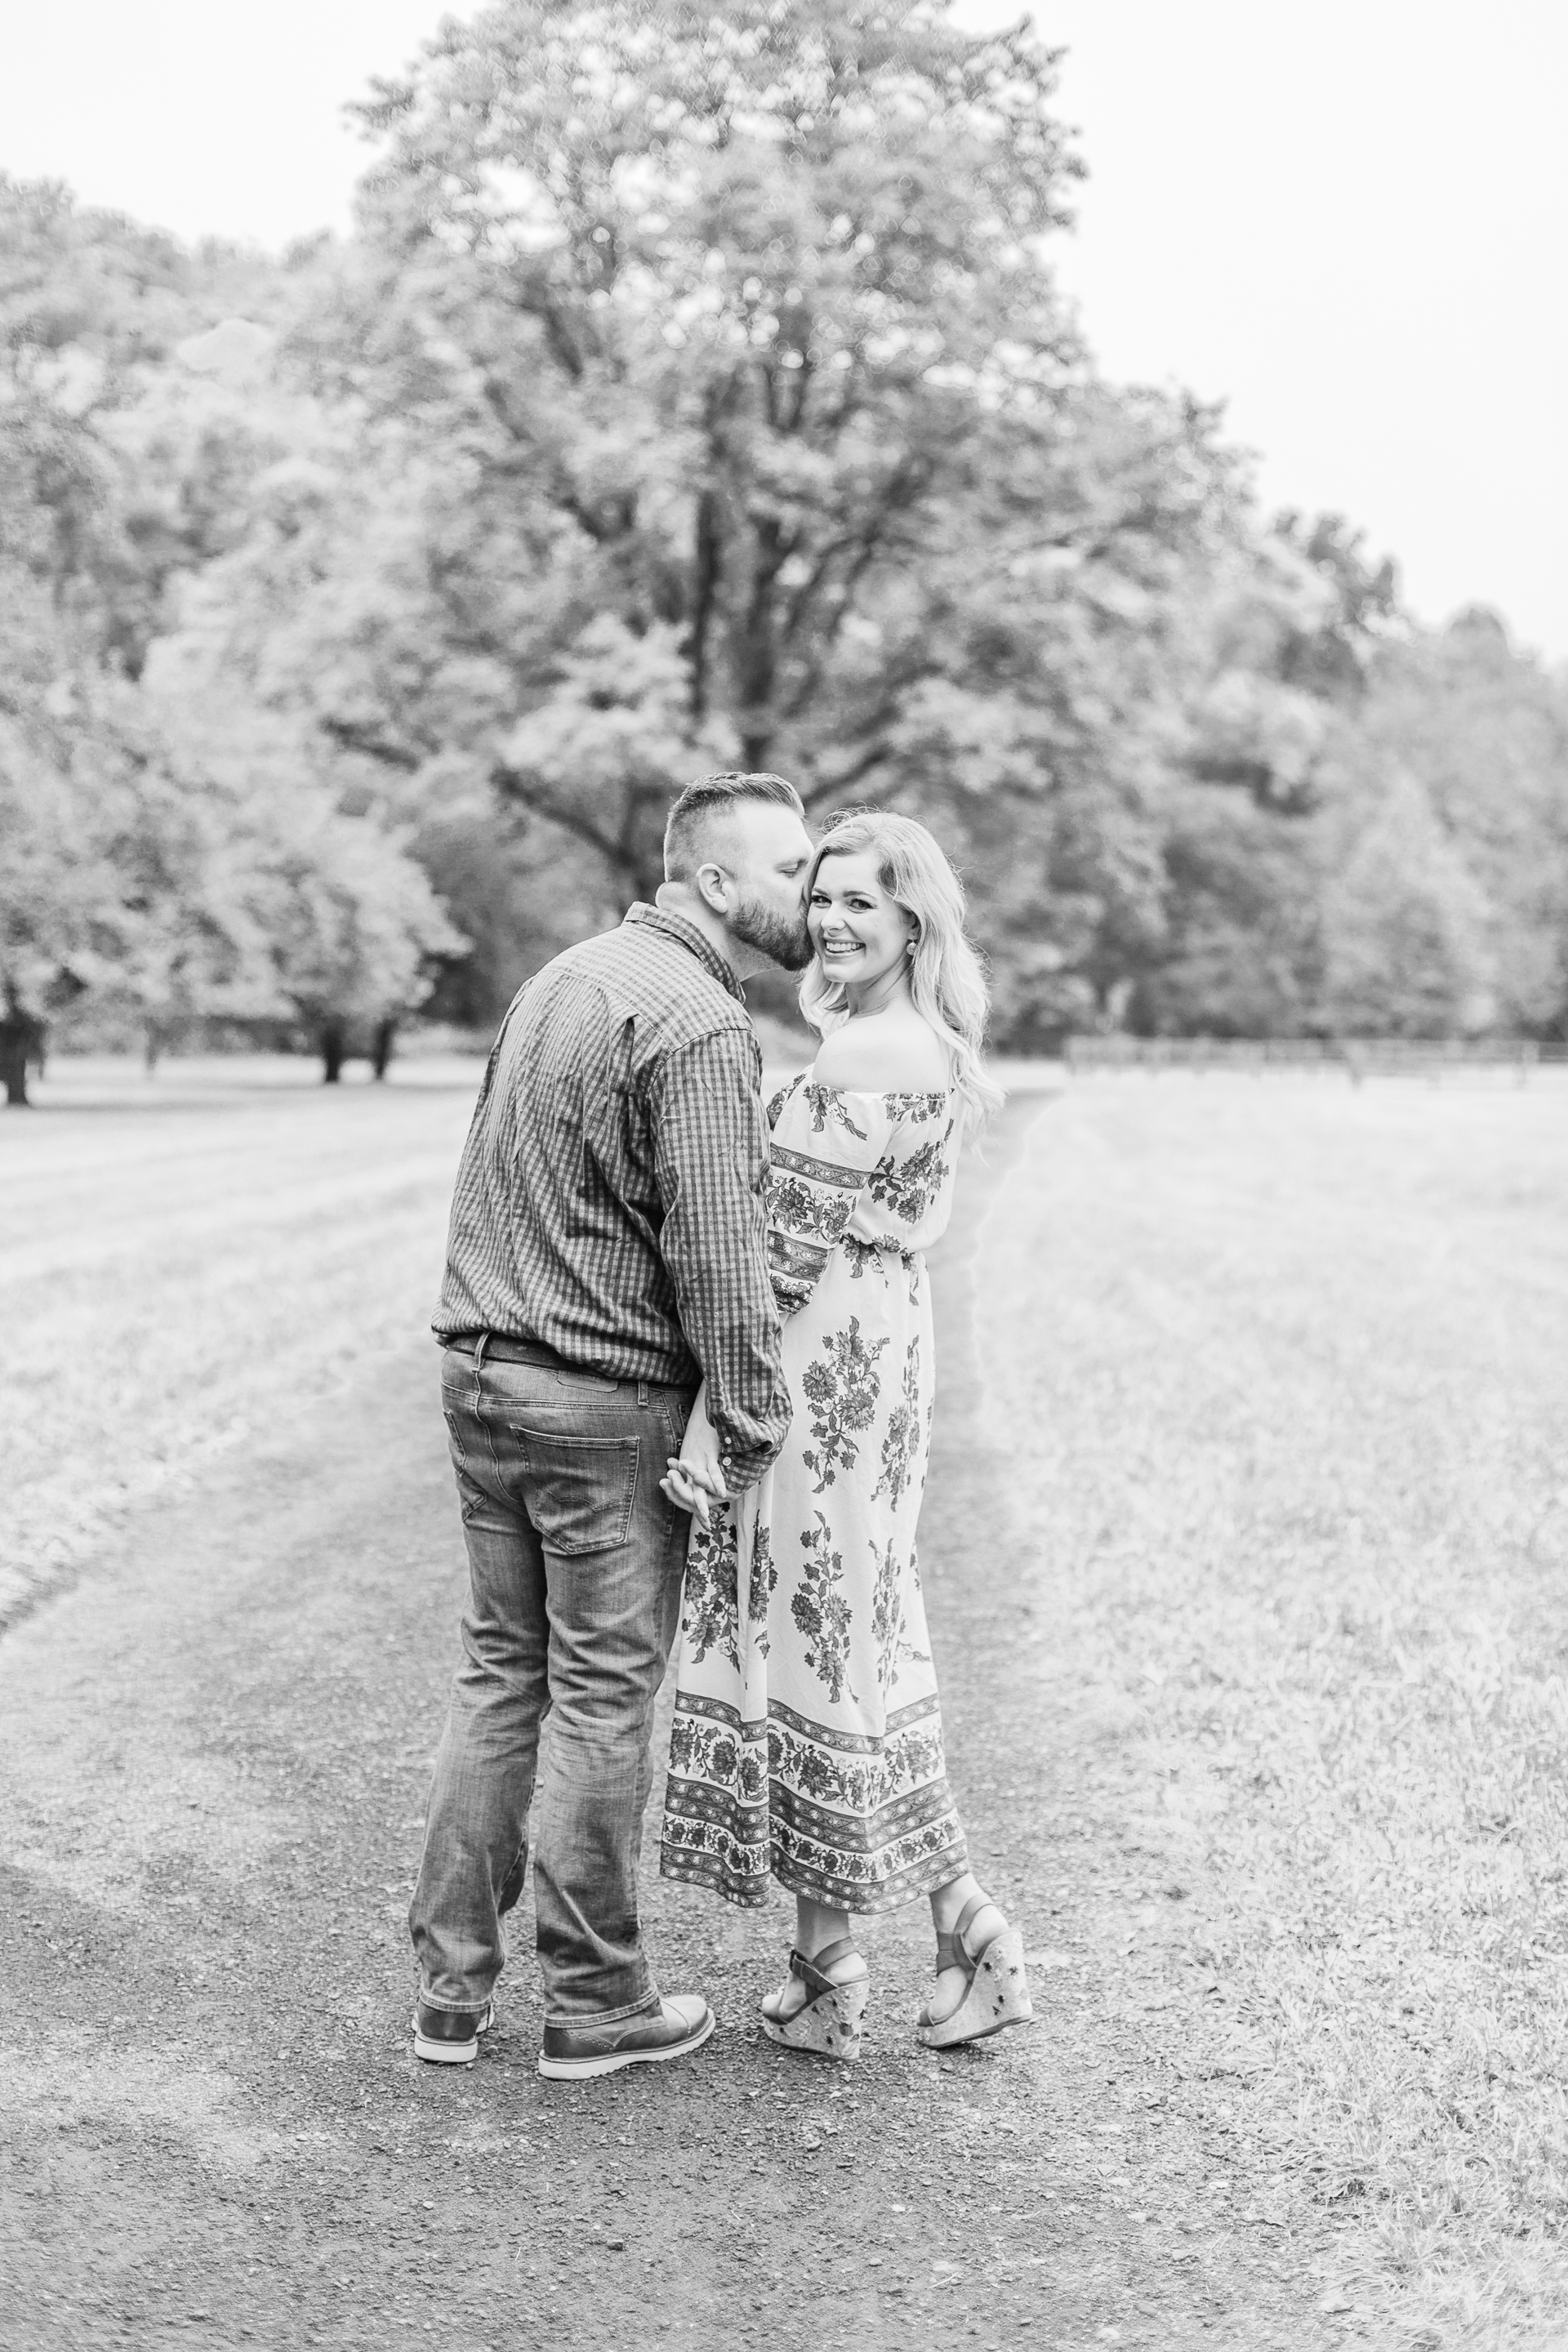 Li'l-Le-Hi Trout Nursery Fish hatchery fall engagement session Lehigh valley wedding photographer Lytle Photo Co (16 of 93).jpg